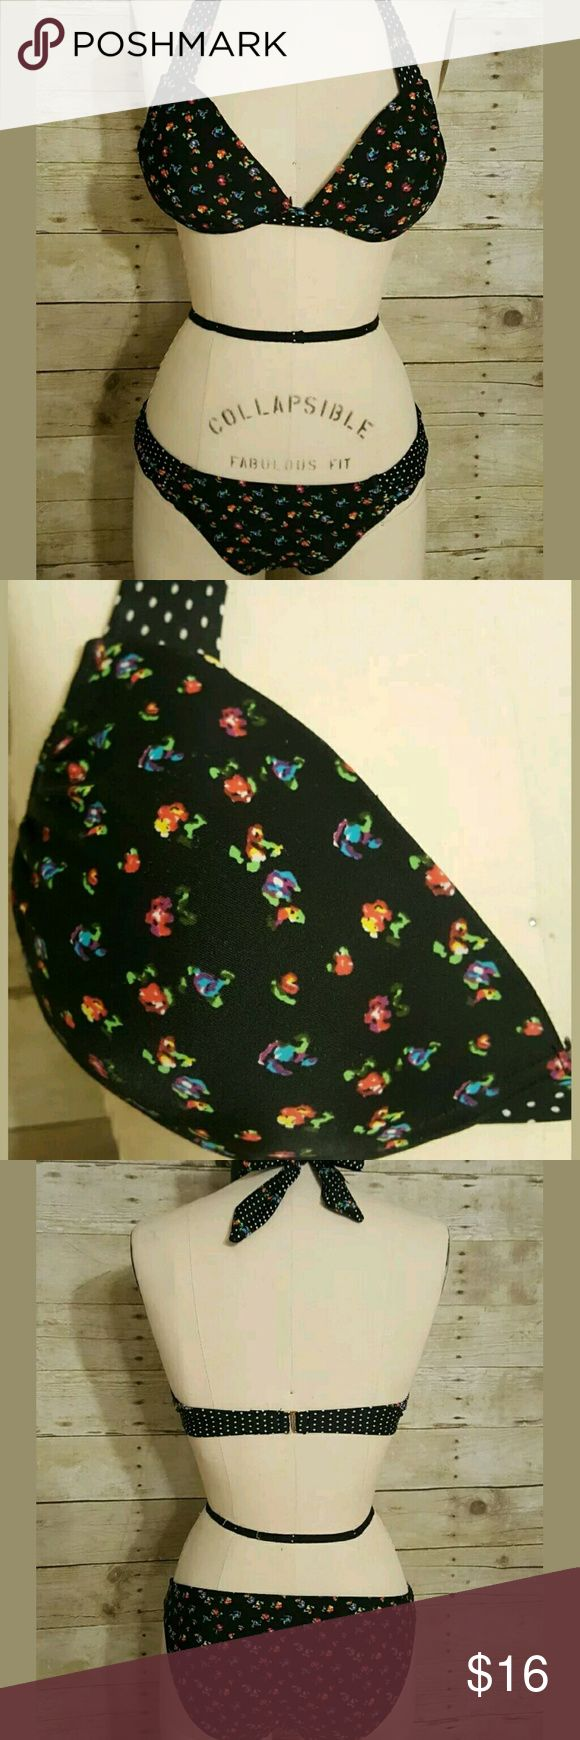 Xhilaration Black Floral Bikini Xhilaration two-piece bikini in black with multi-color floral print and polka dot accents.  Top is padded and has underwires, halter tie neck, hook clip back. Bottoms are standard bikini brief.  Top and bottom are size small. Tags from top have been cut out.  Pre-owned, excellent condition, no rips or stains. Xhilaration Swim Bikinis